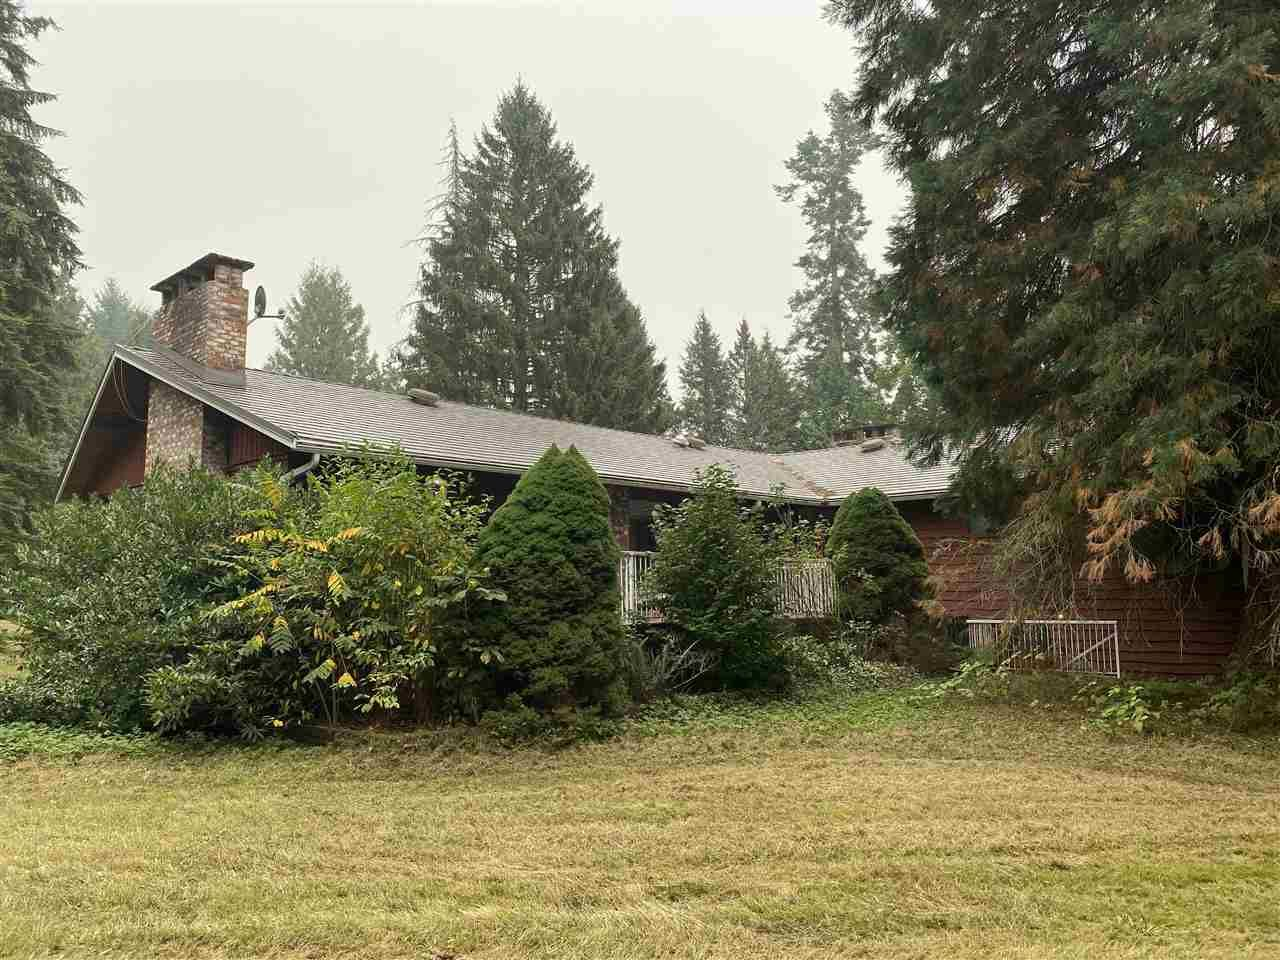 """Main Photo: 22923 78 Avenue in Langley: Fort Langley House for sale in """"Forest Knolls"""" : MLS®# R2497282"""